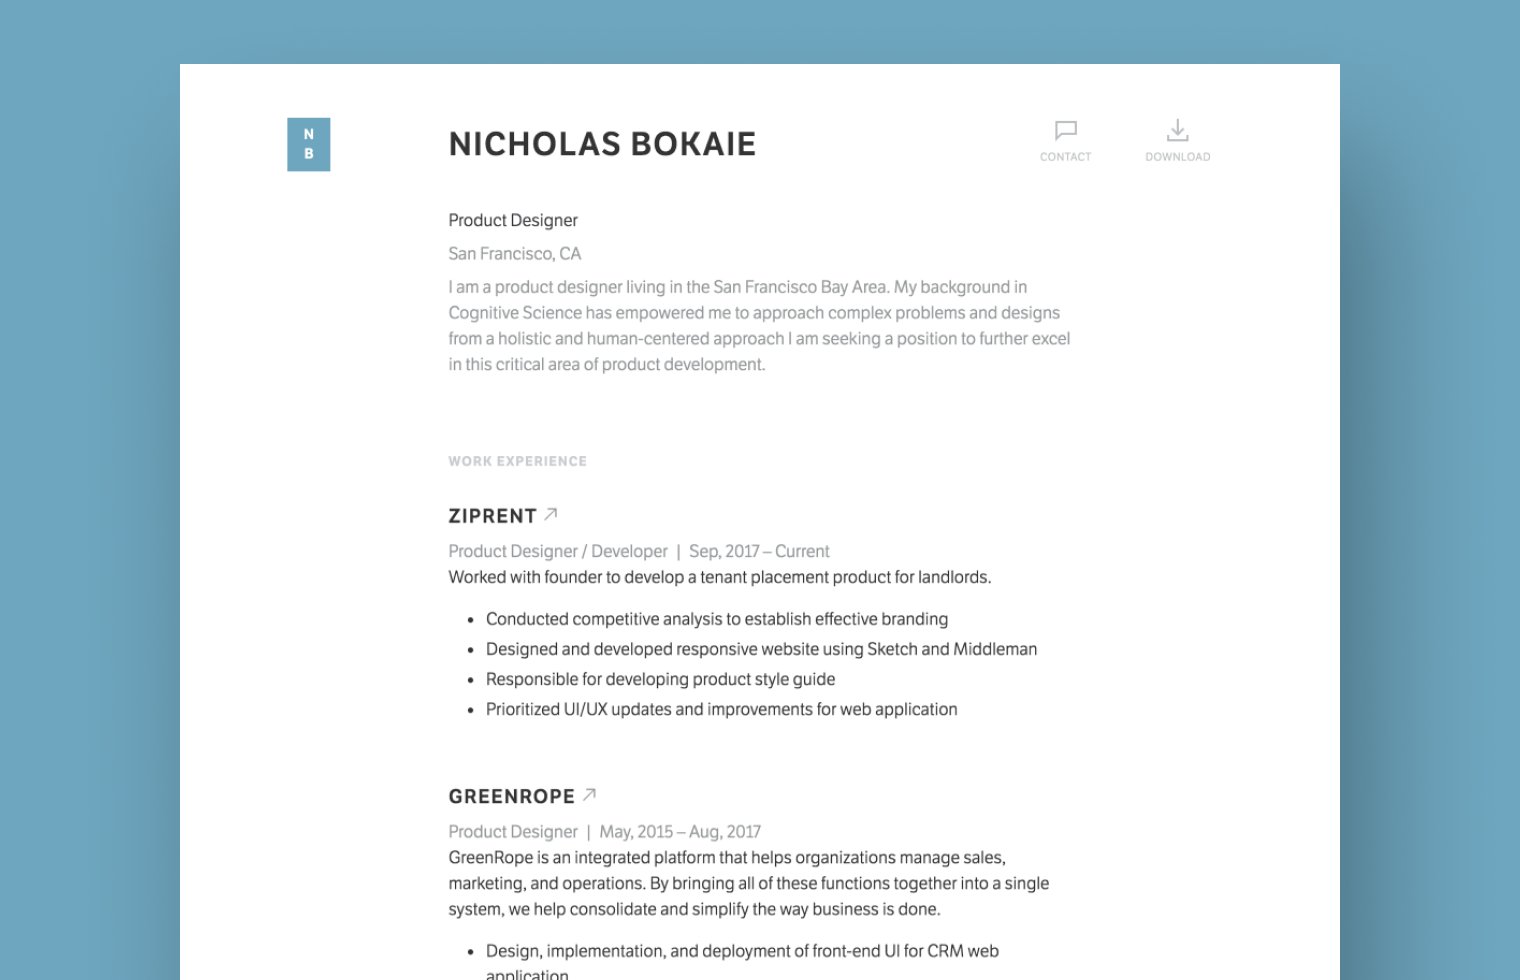 Product Designer Resume example built with Standard Resume